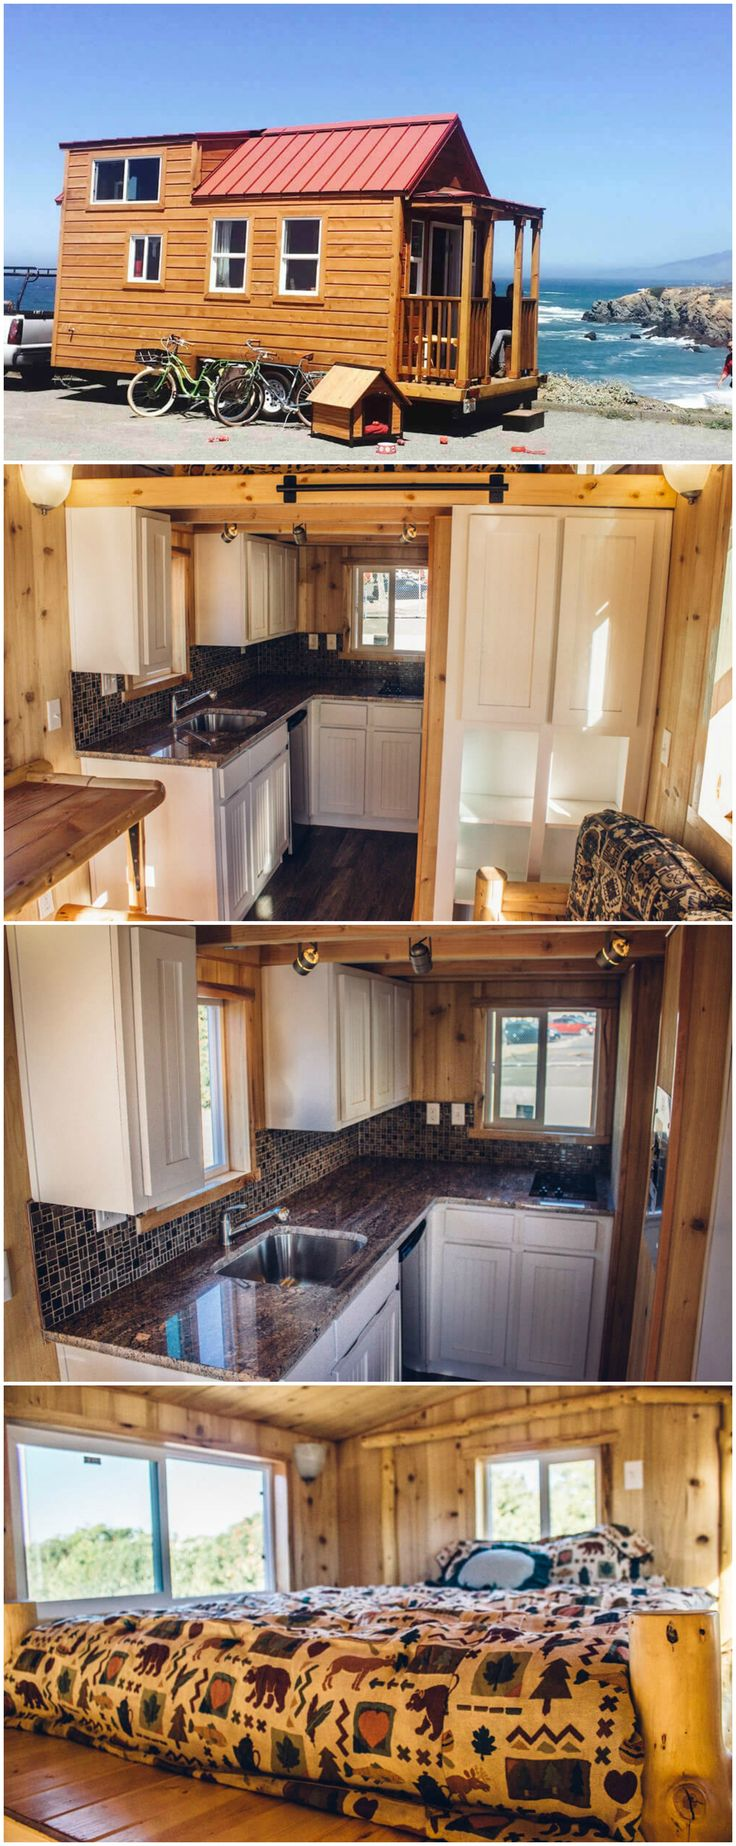 The Mt. Everest is an amazing tiny house built by Tiny Mountain Houses in Sacramento, CA.  This tiny house is built on a 22′ trailer and has a 3′ front porch. A total of 255 sq.ft. is split between the main level (161.5 sq.ft.) and two lofts: one large enough for a California King and the other a 25.5 sq.ft. storage area.  The price for this model starts from $44,900. Tiny Mountain Houses delivers to all 50 states.